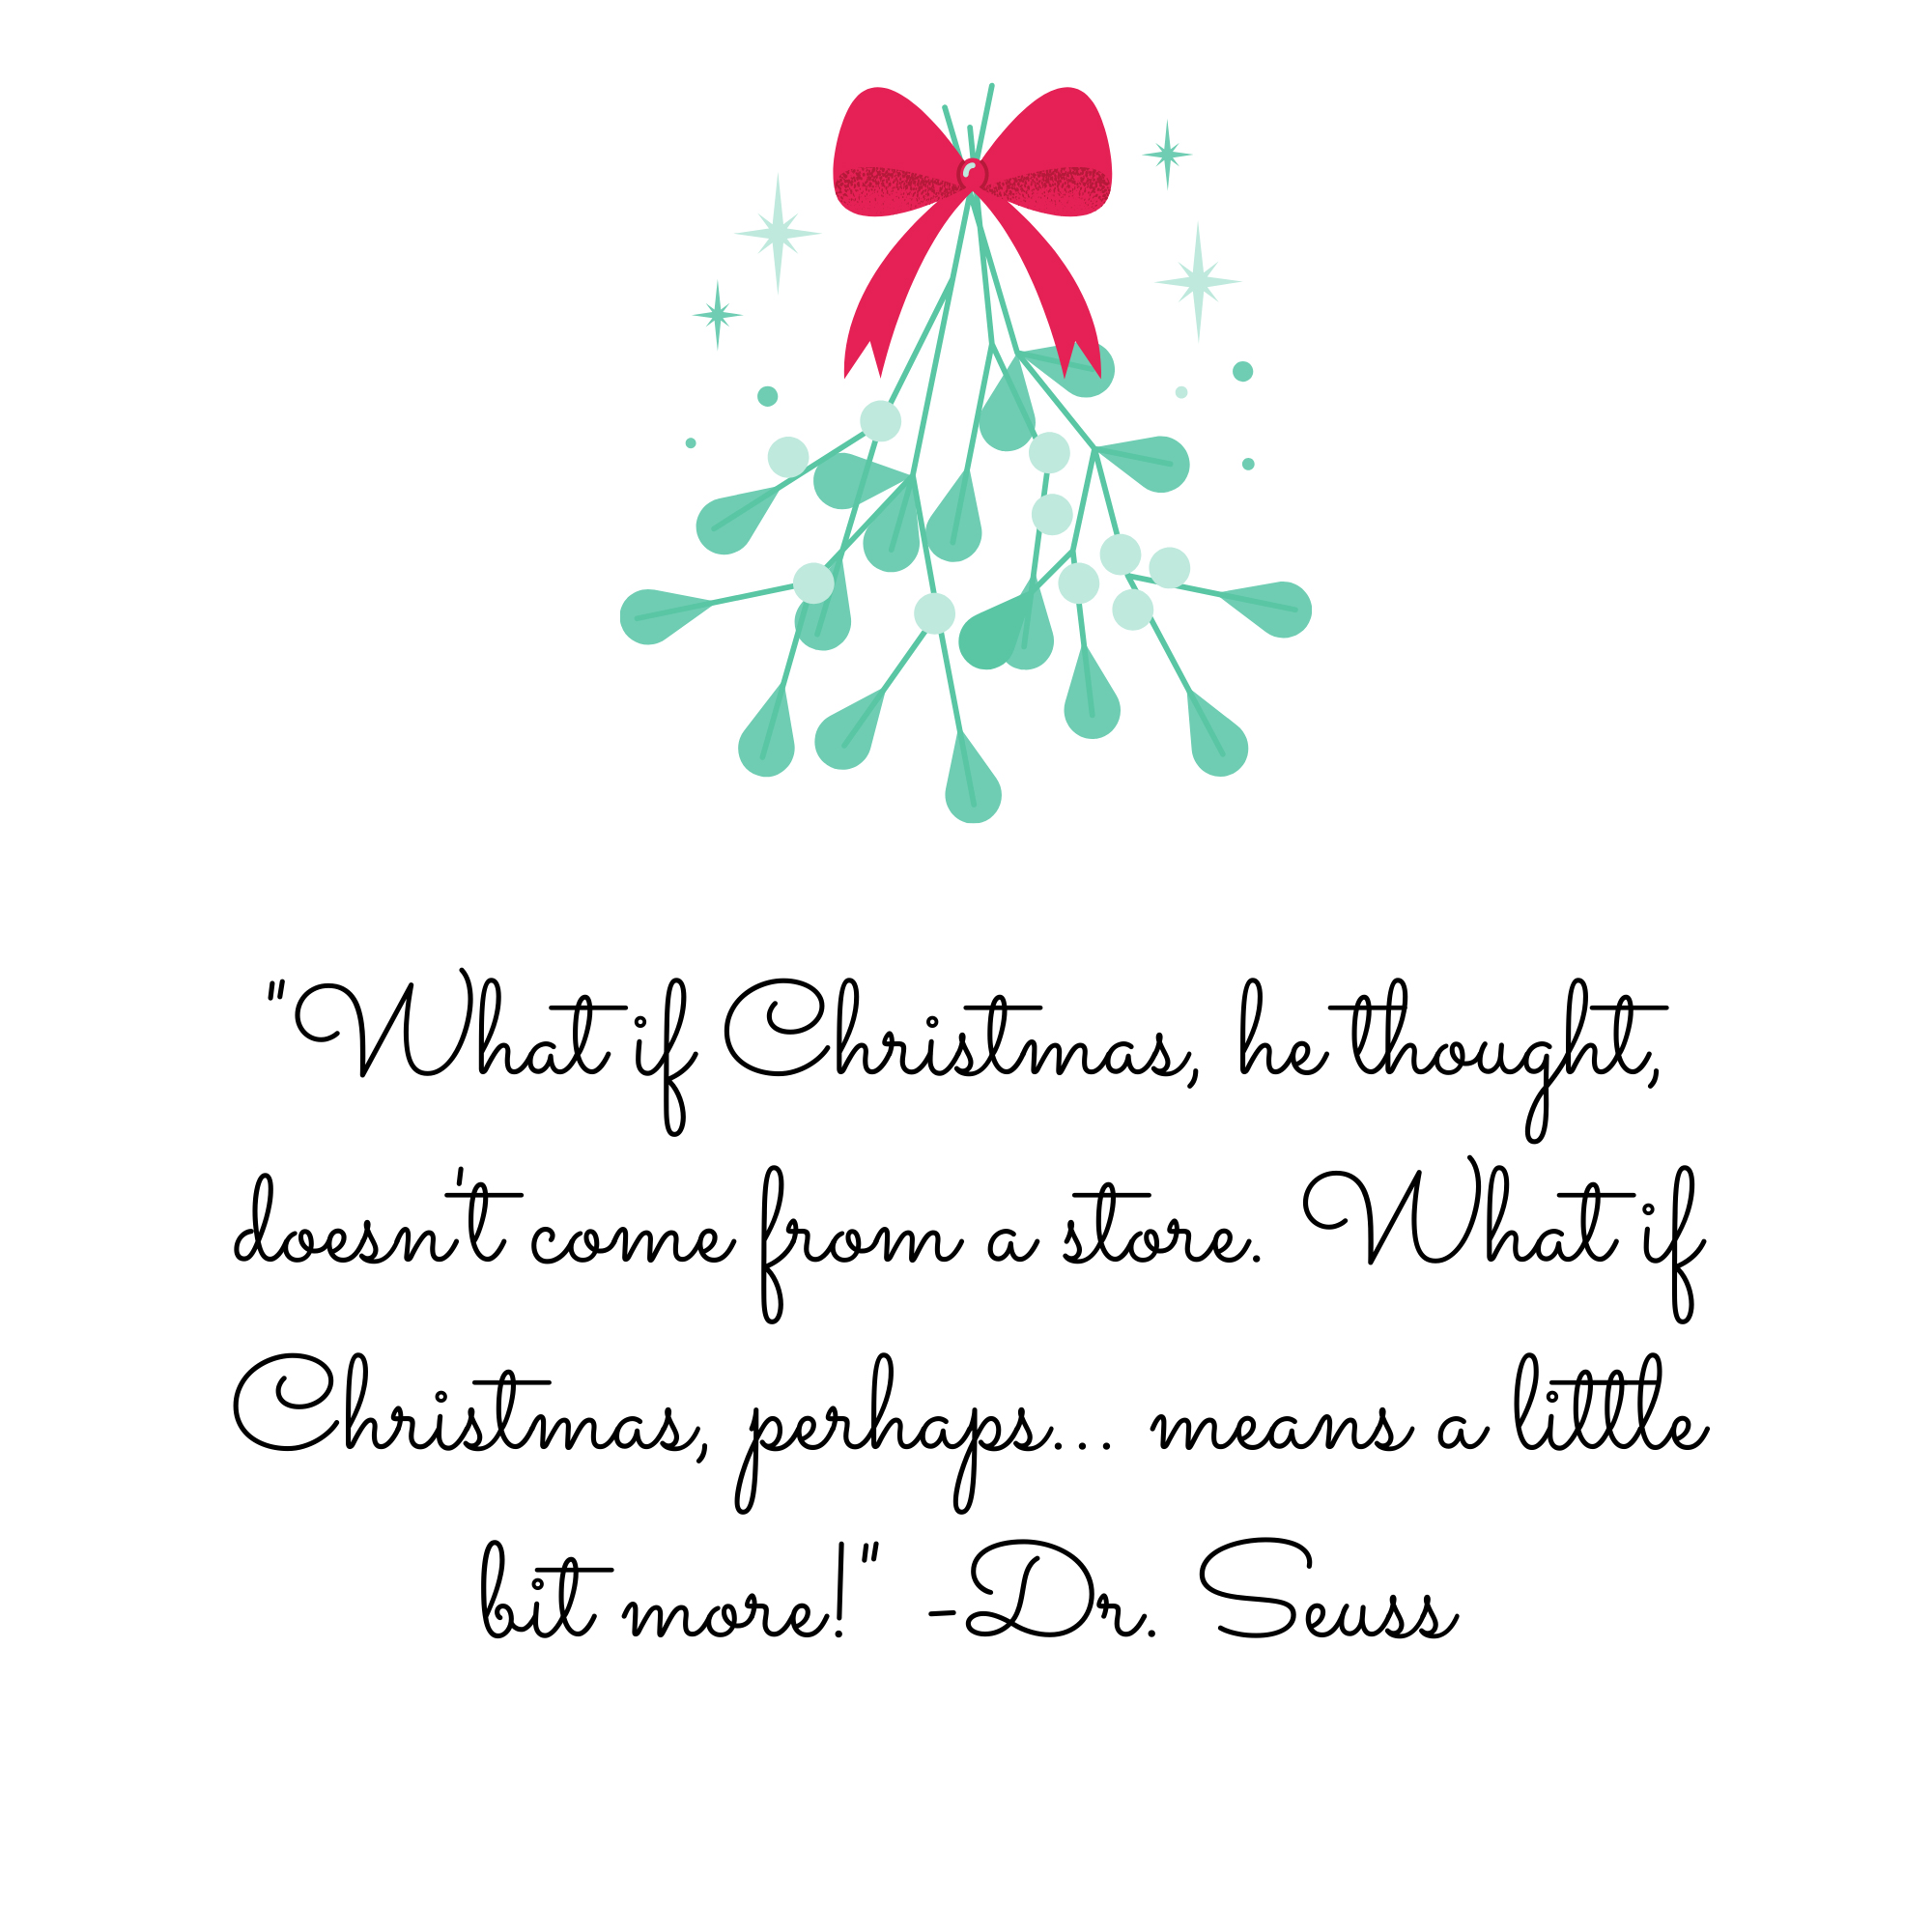 """""""What if Christmas, he thought, doesn't come from a store. What if Christmas, perhaps... means a little bit more!"""" ―Dr. Seuss"""